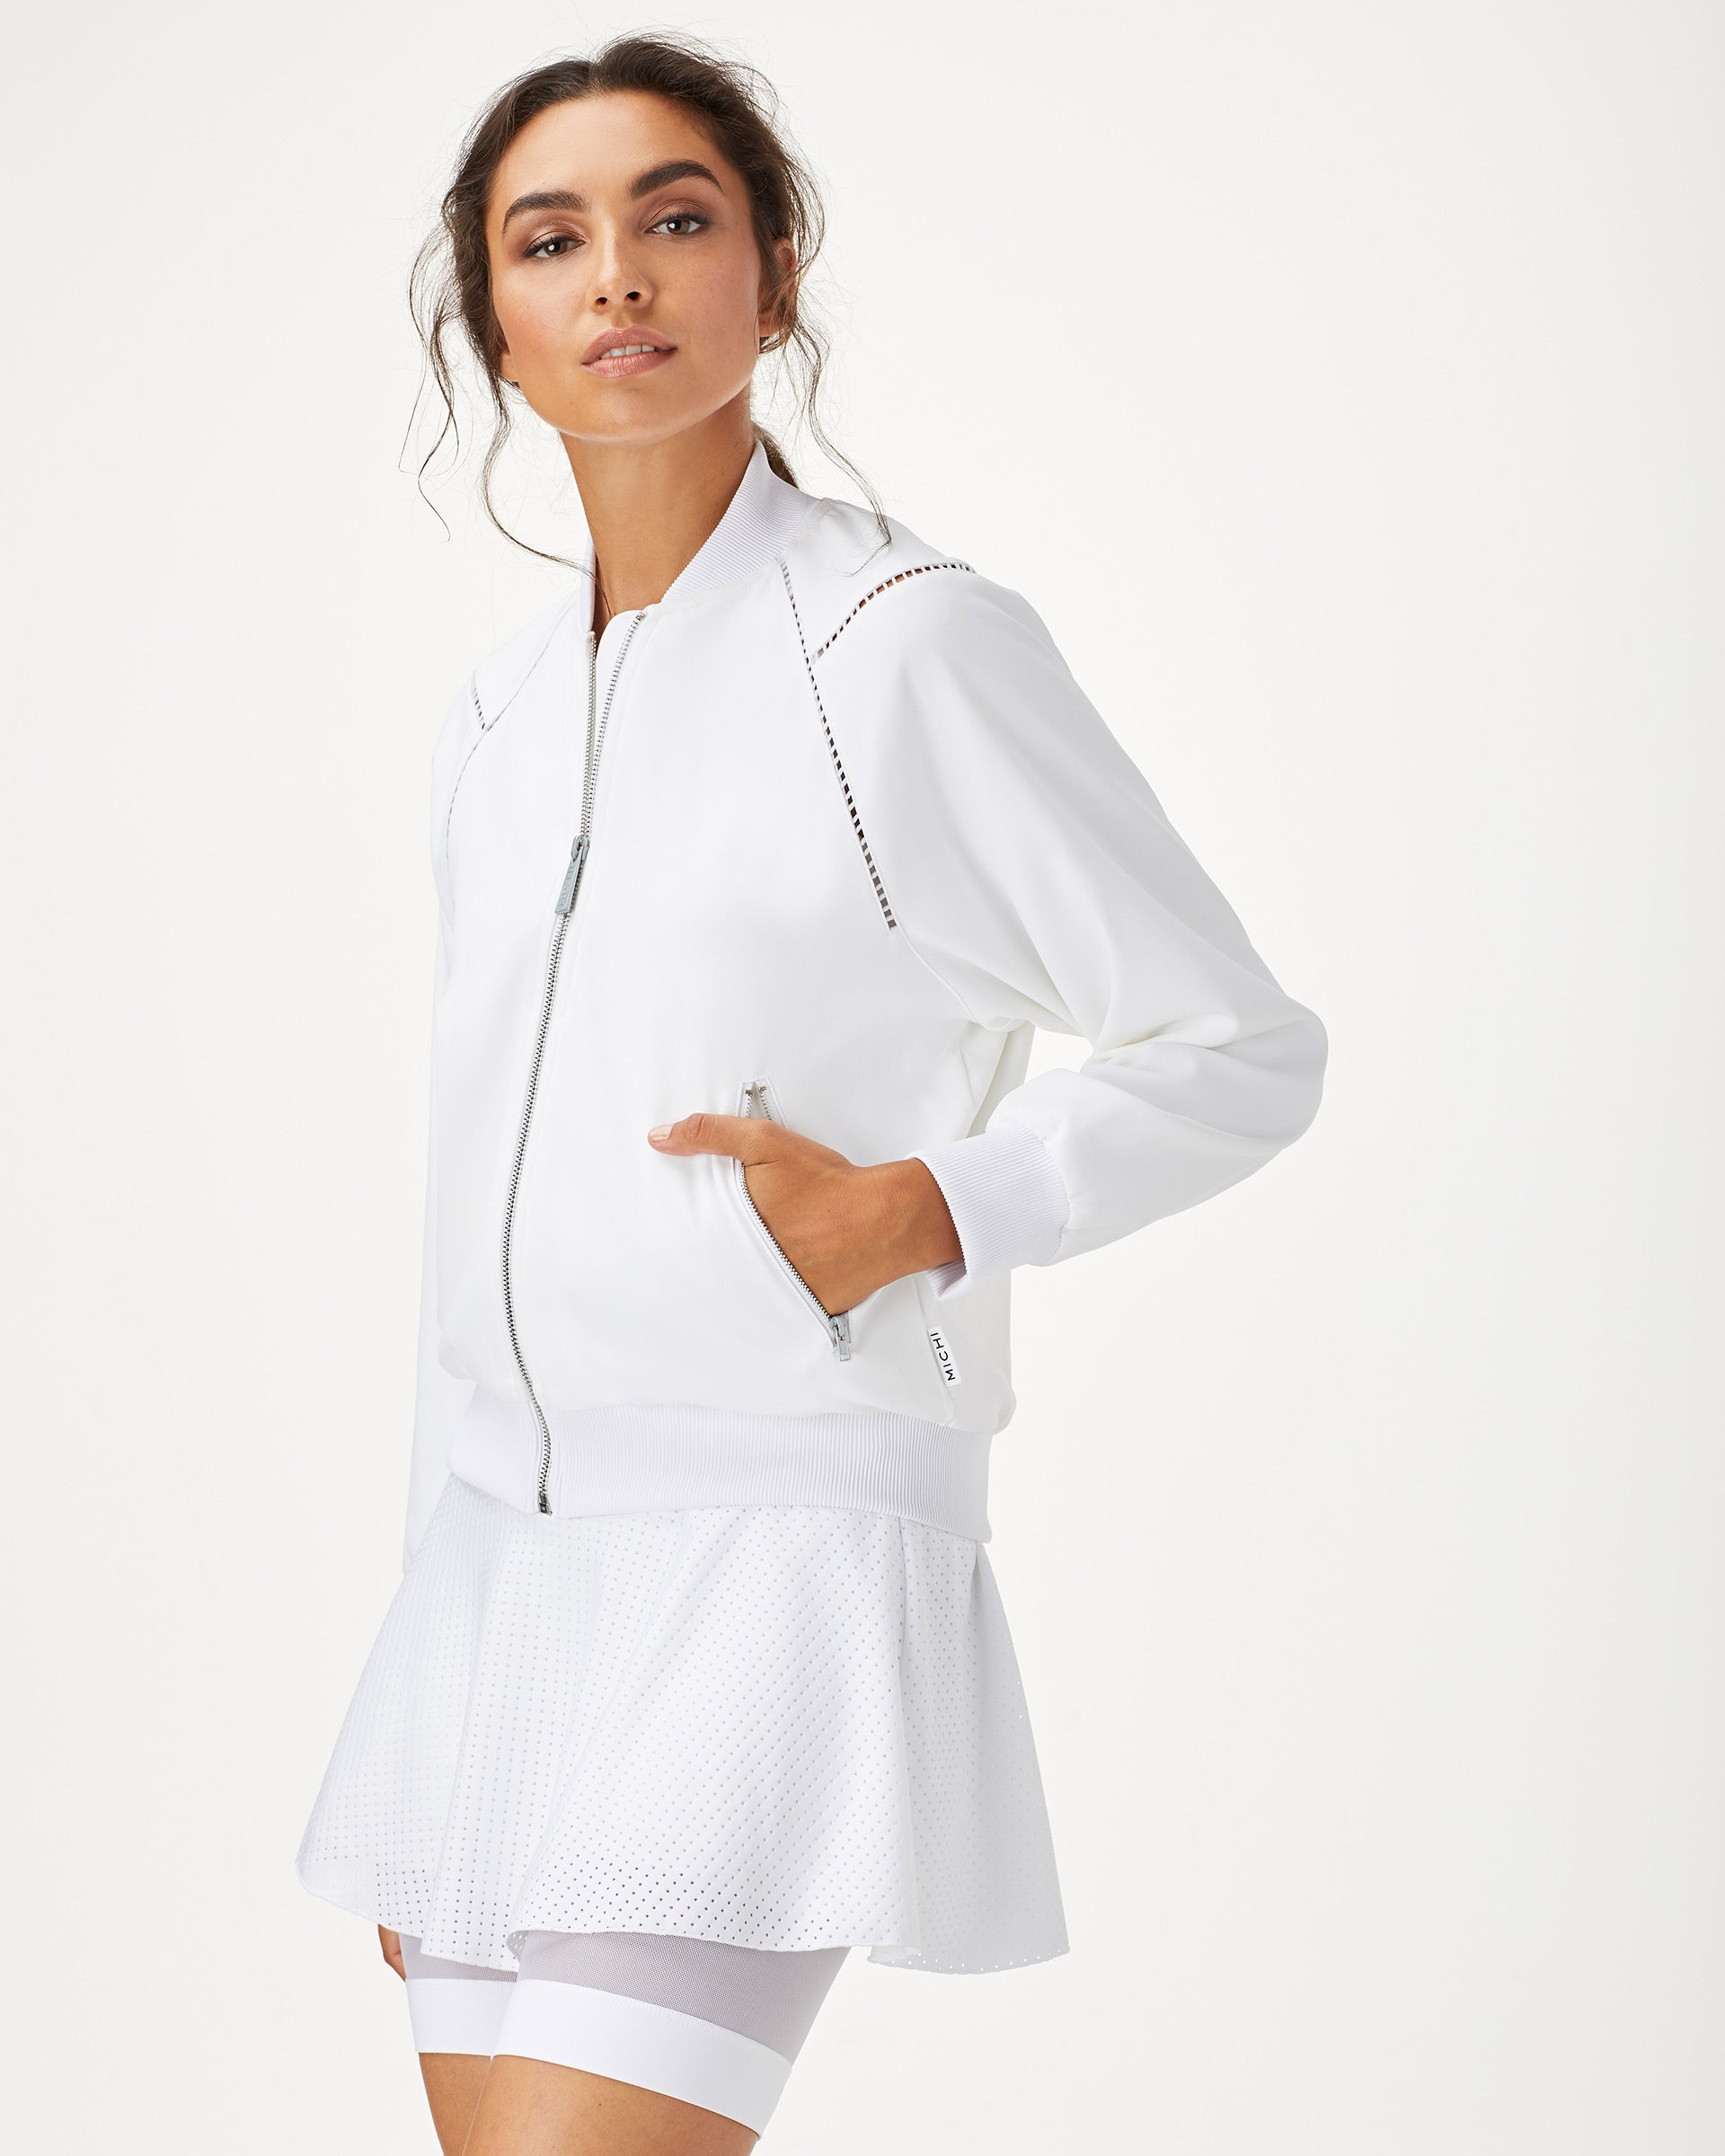 1-love-tennis-jacket-white